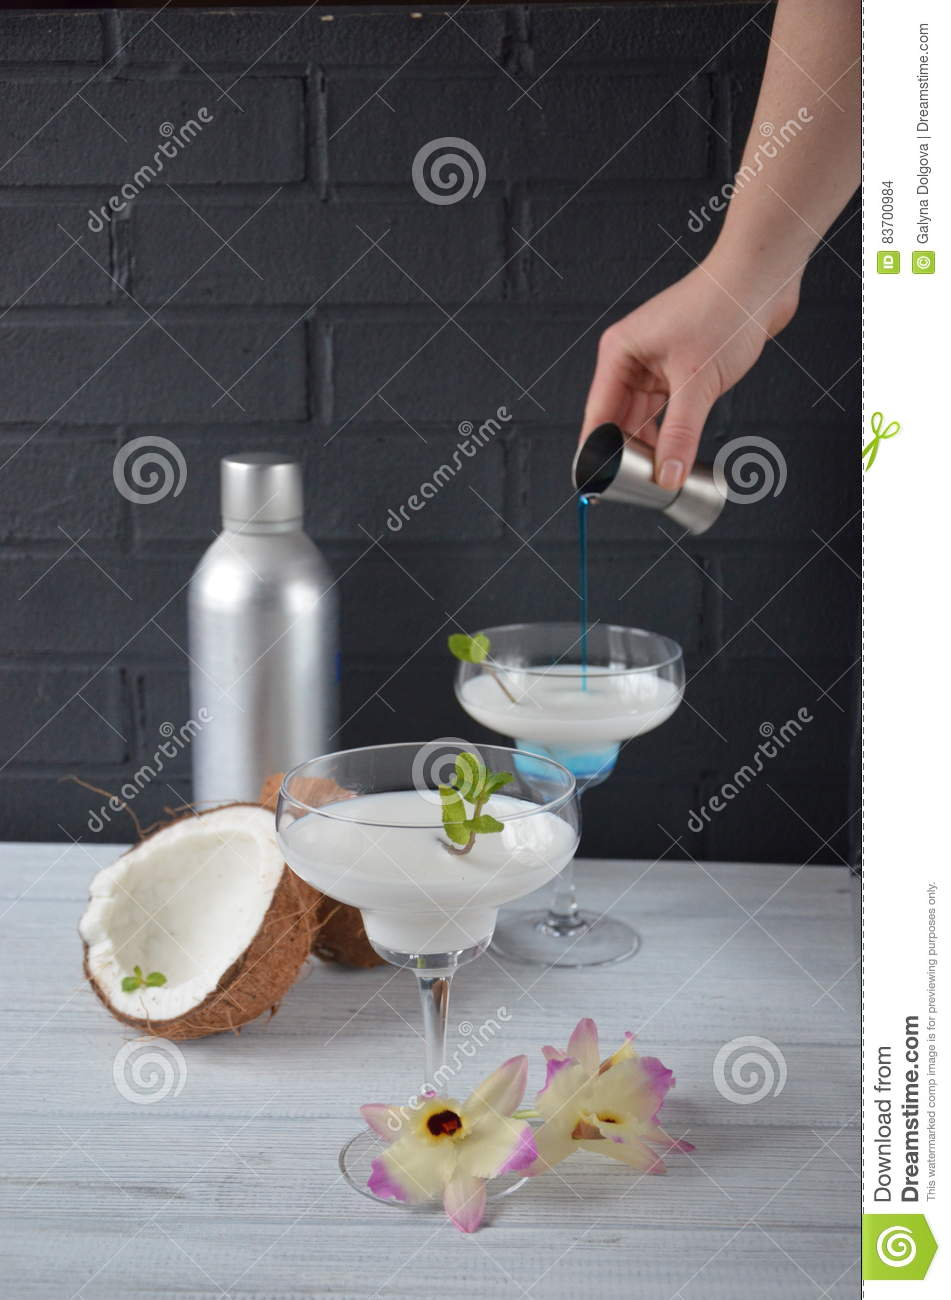 Pina Colada Drink In Cocktail Glass Decorated With Coconut And Orhid Flowers Stock Photo